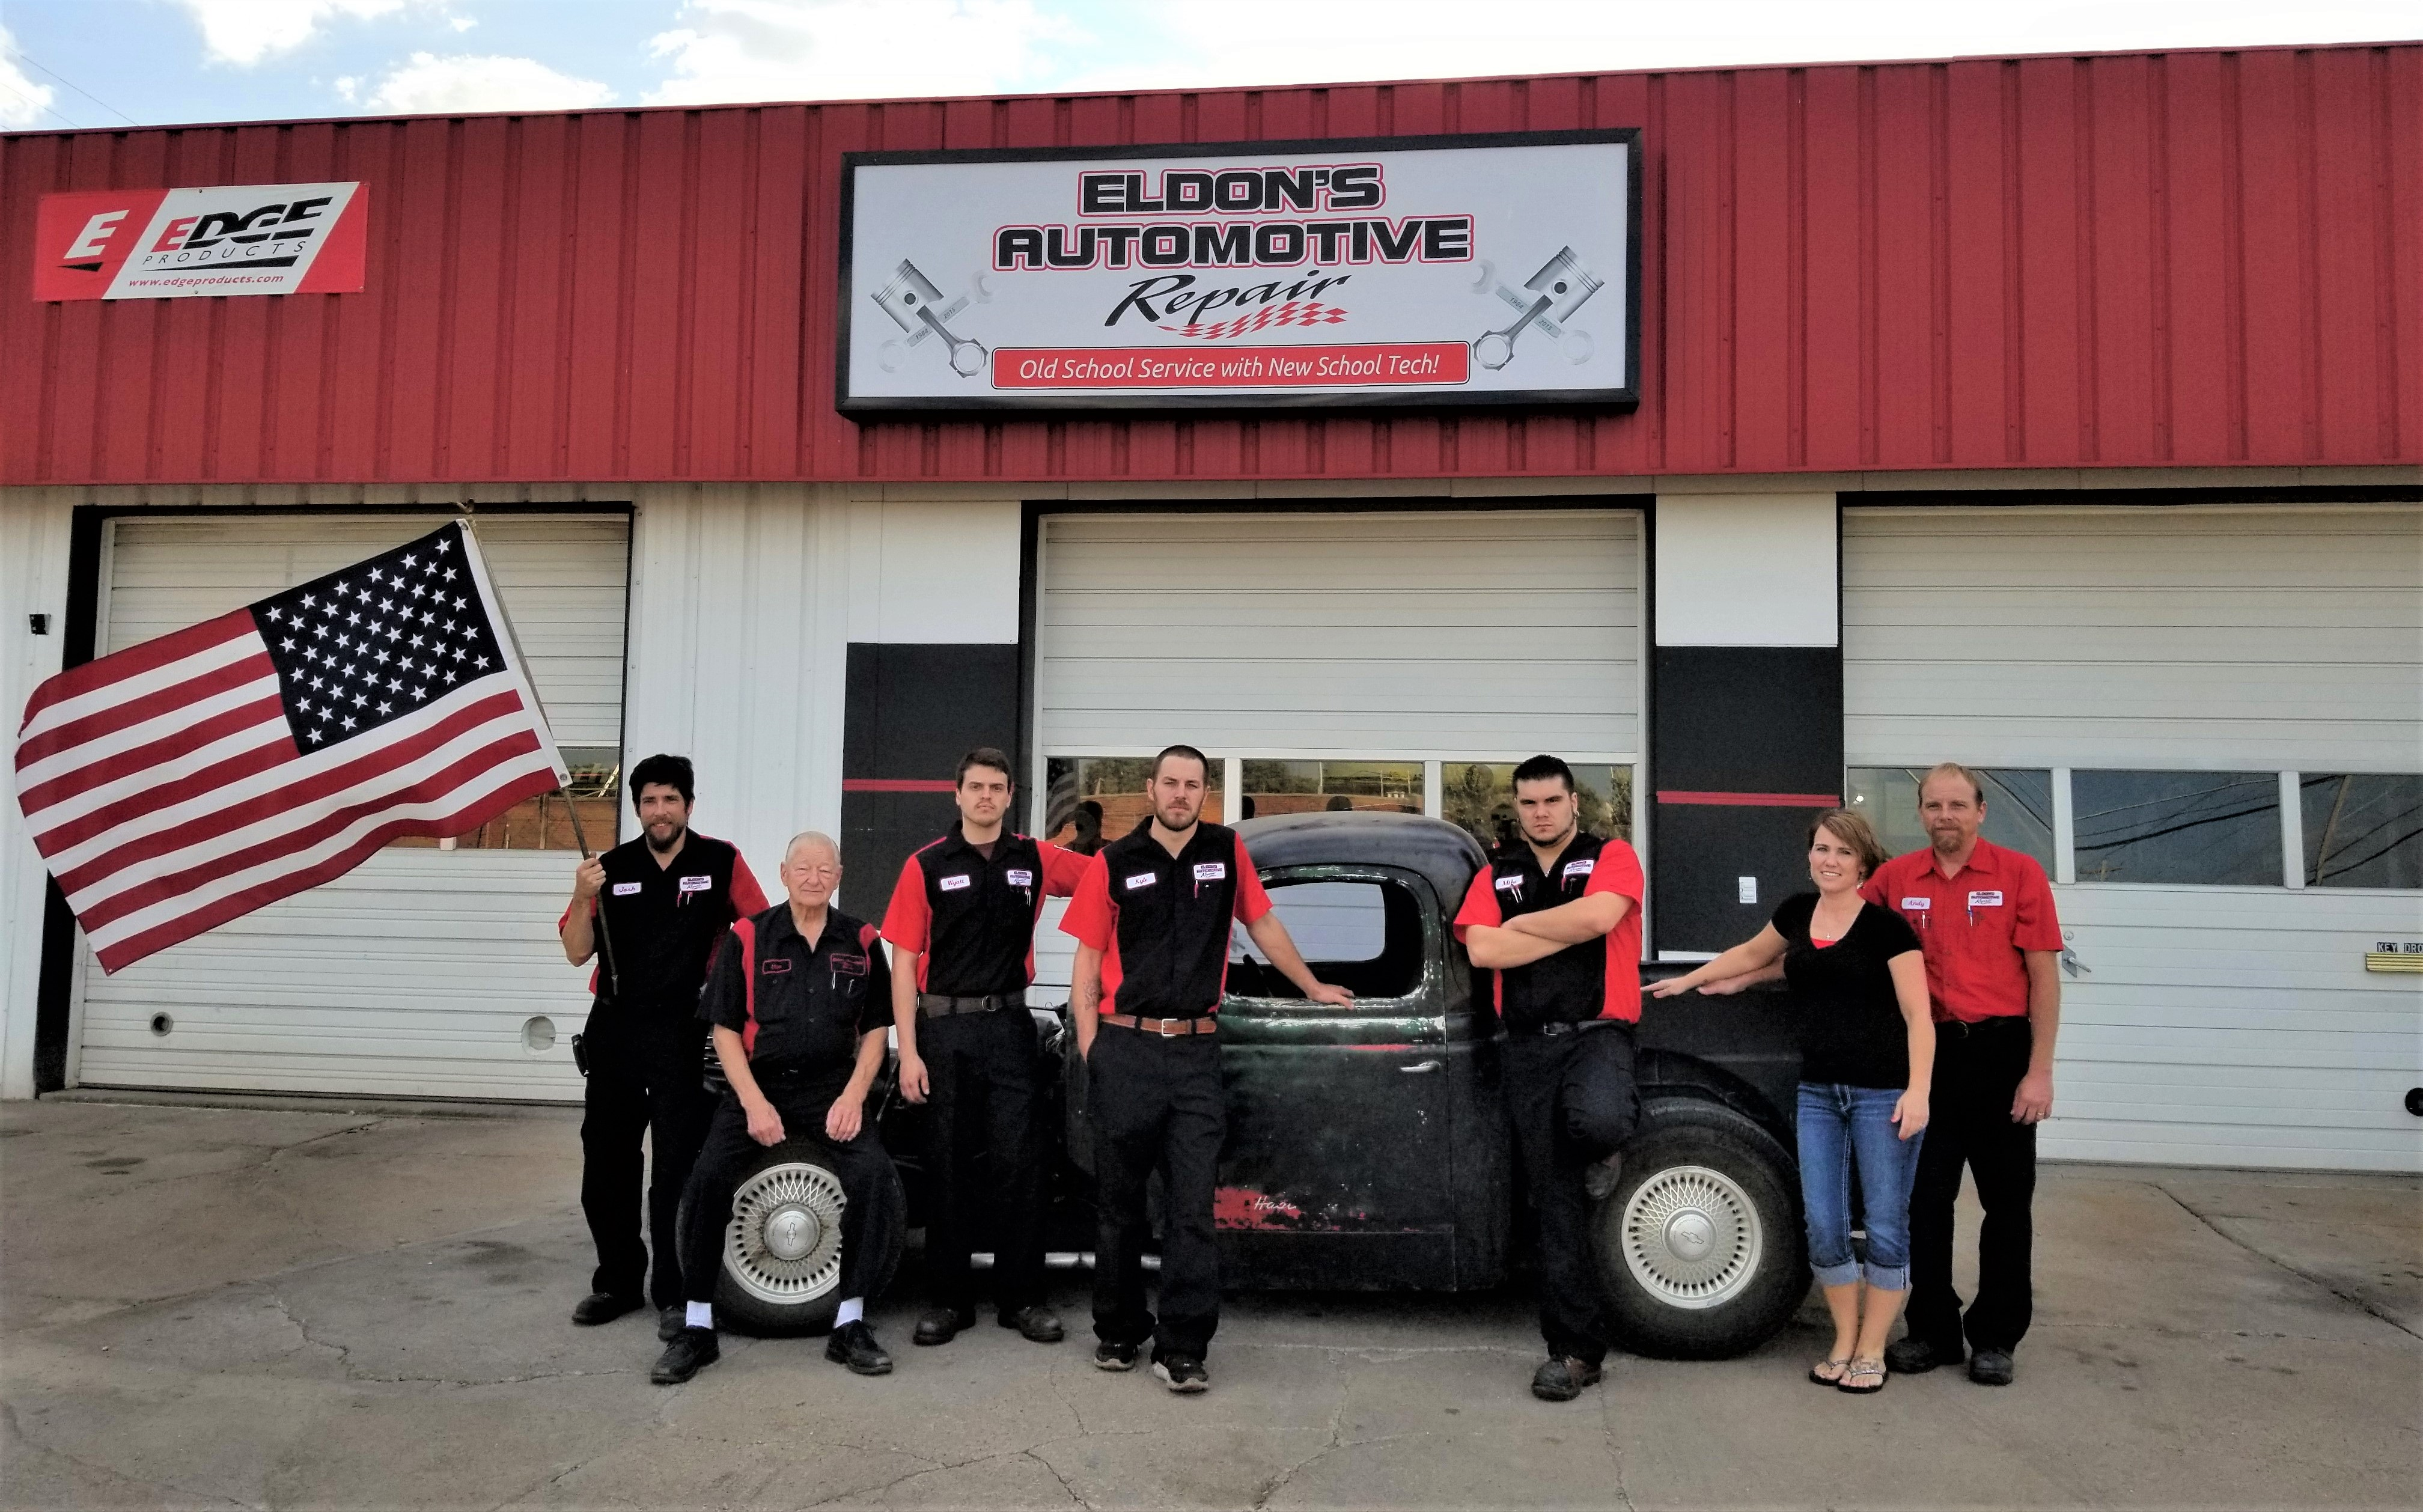 Eldon's Automotive Repair Team